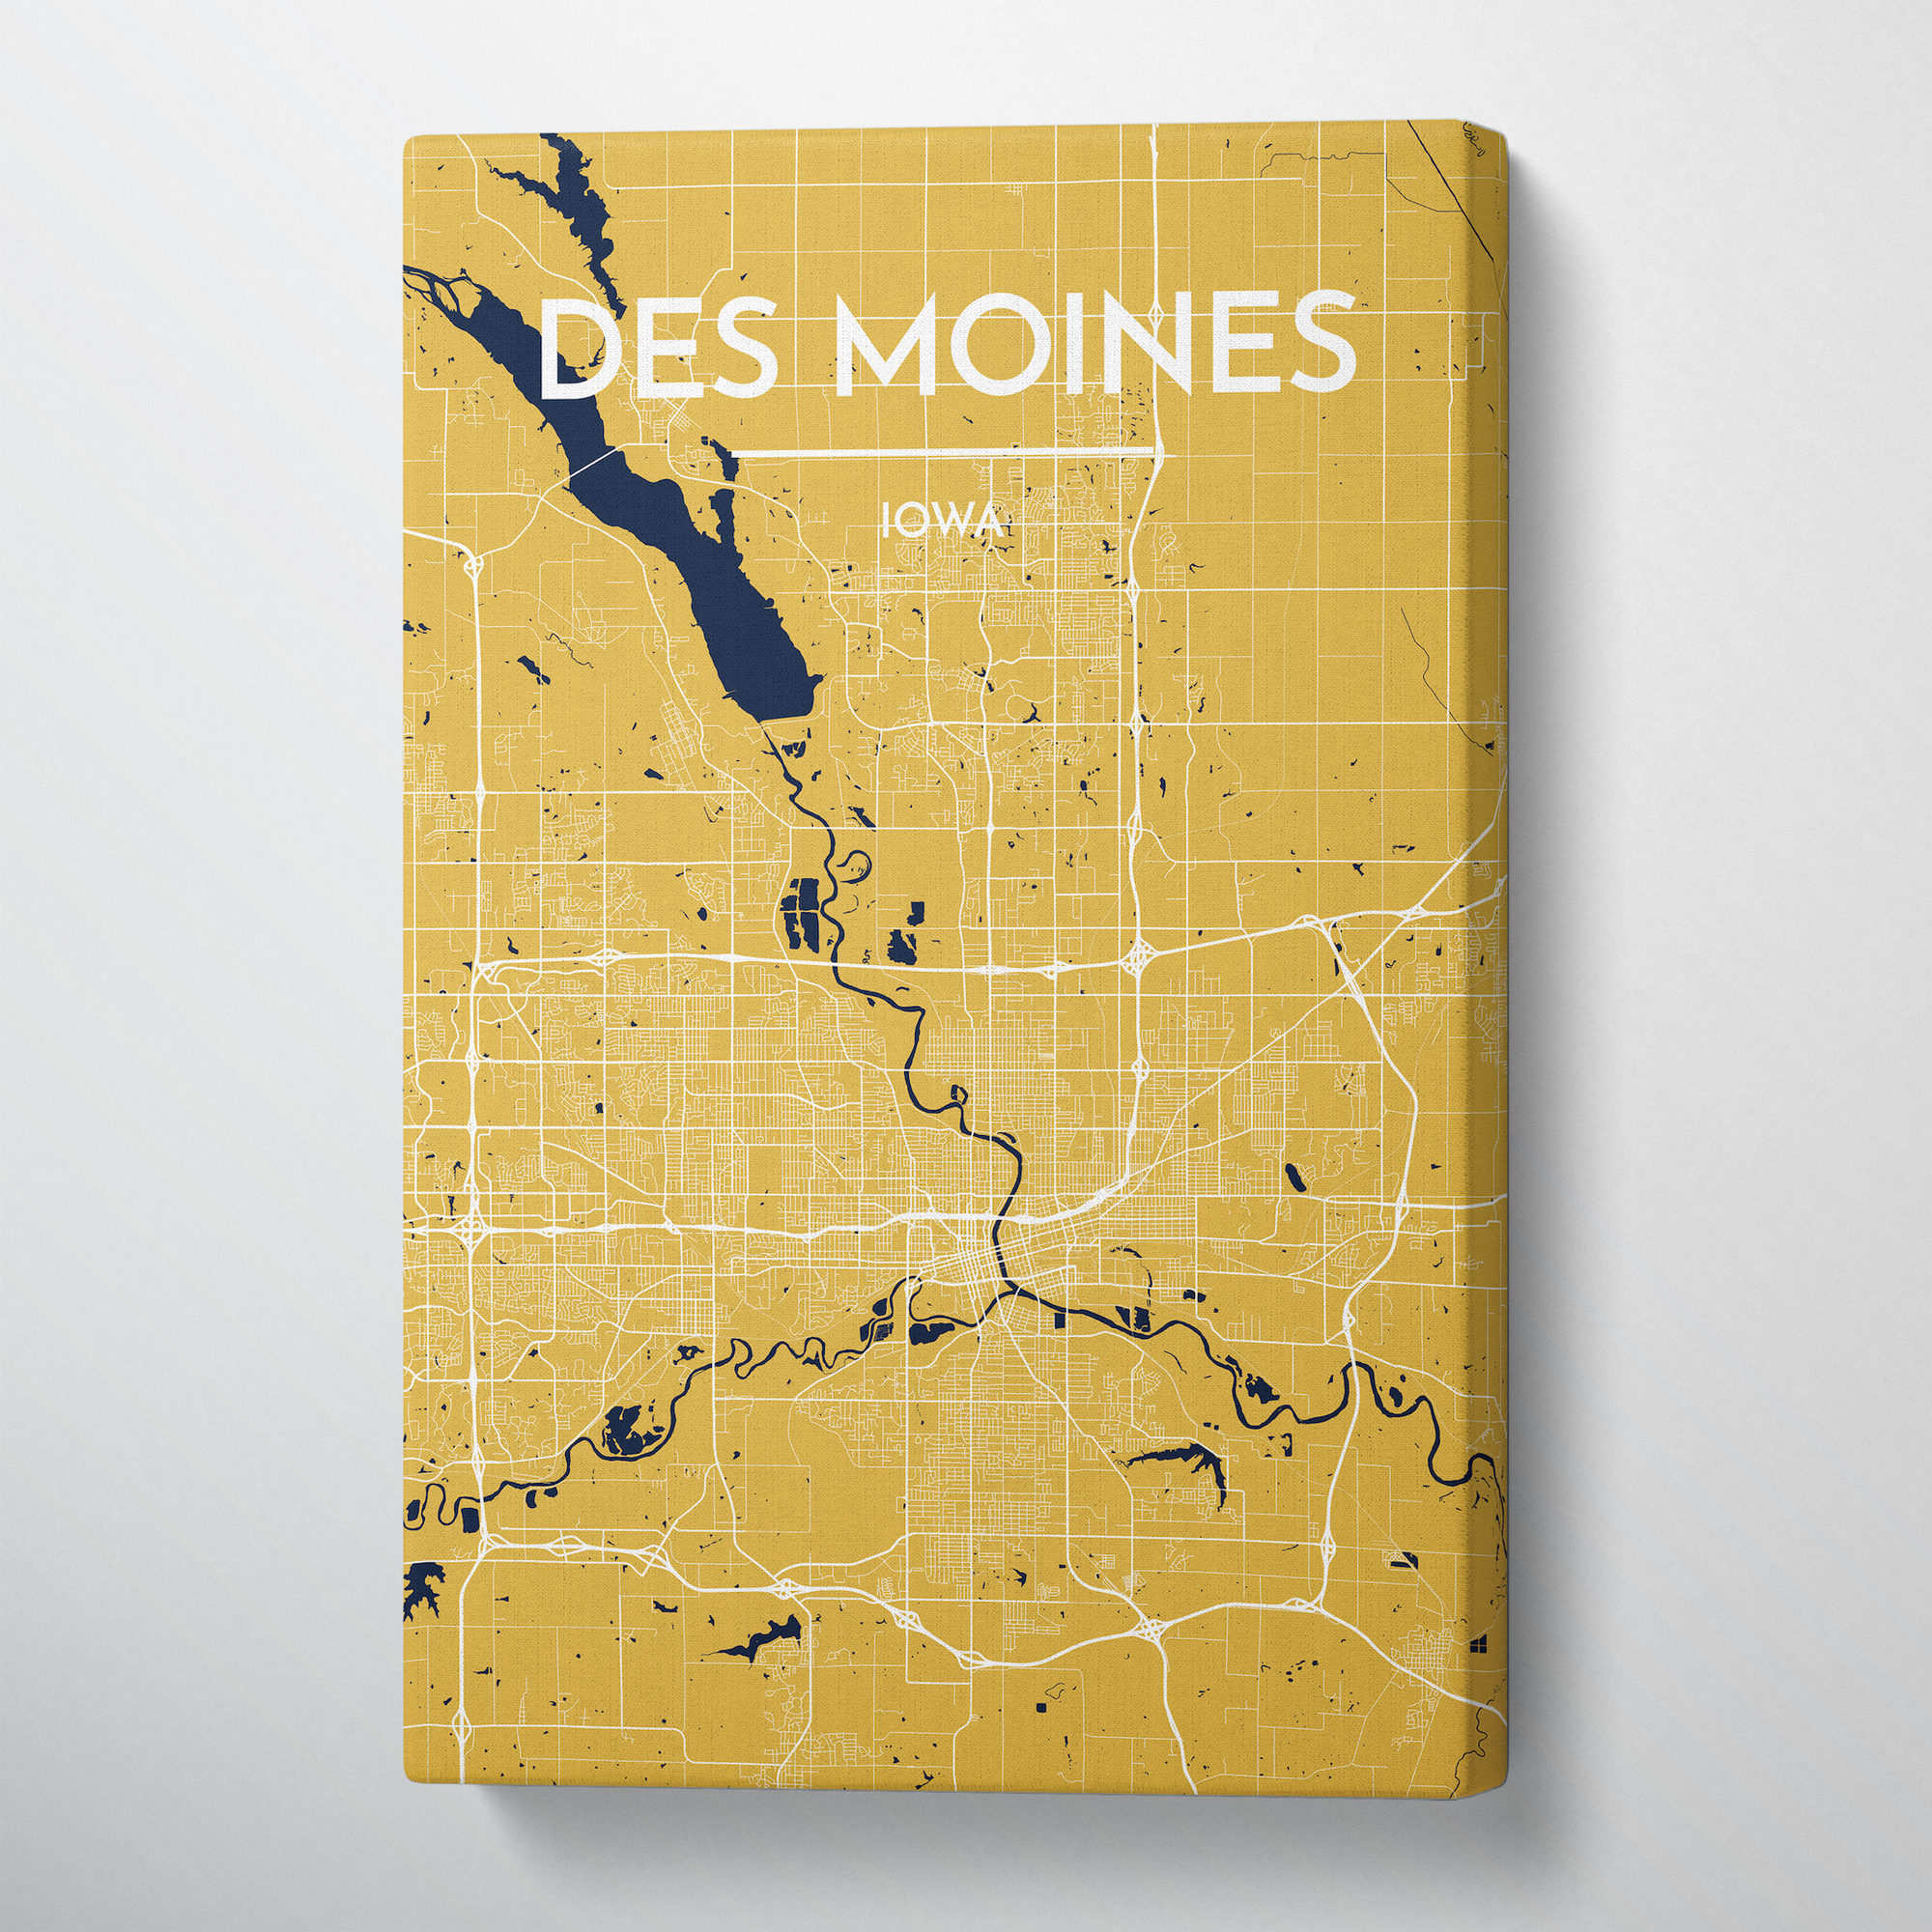 Des Moines Map Canvas Wrap - Point Two Design